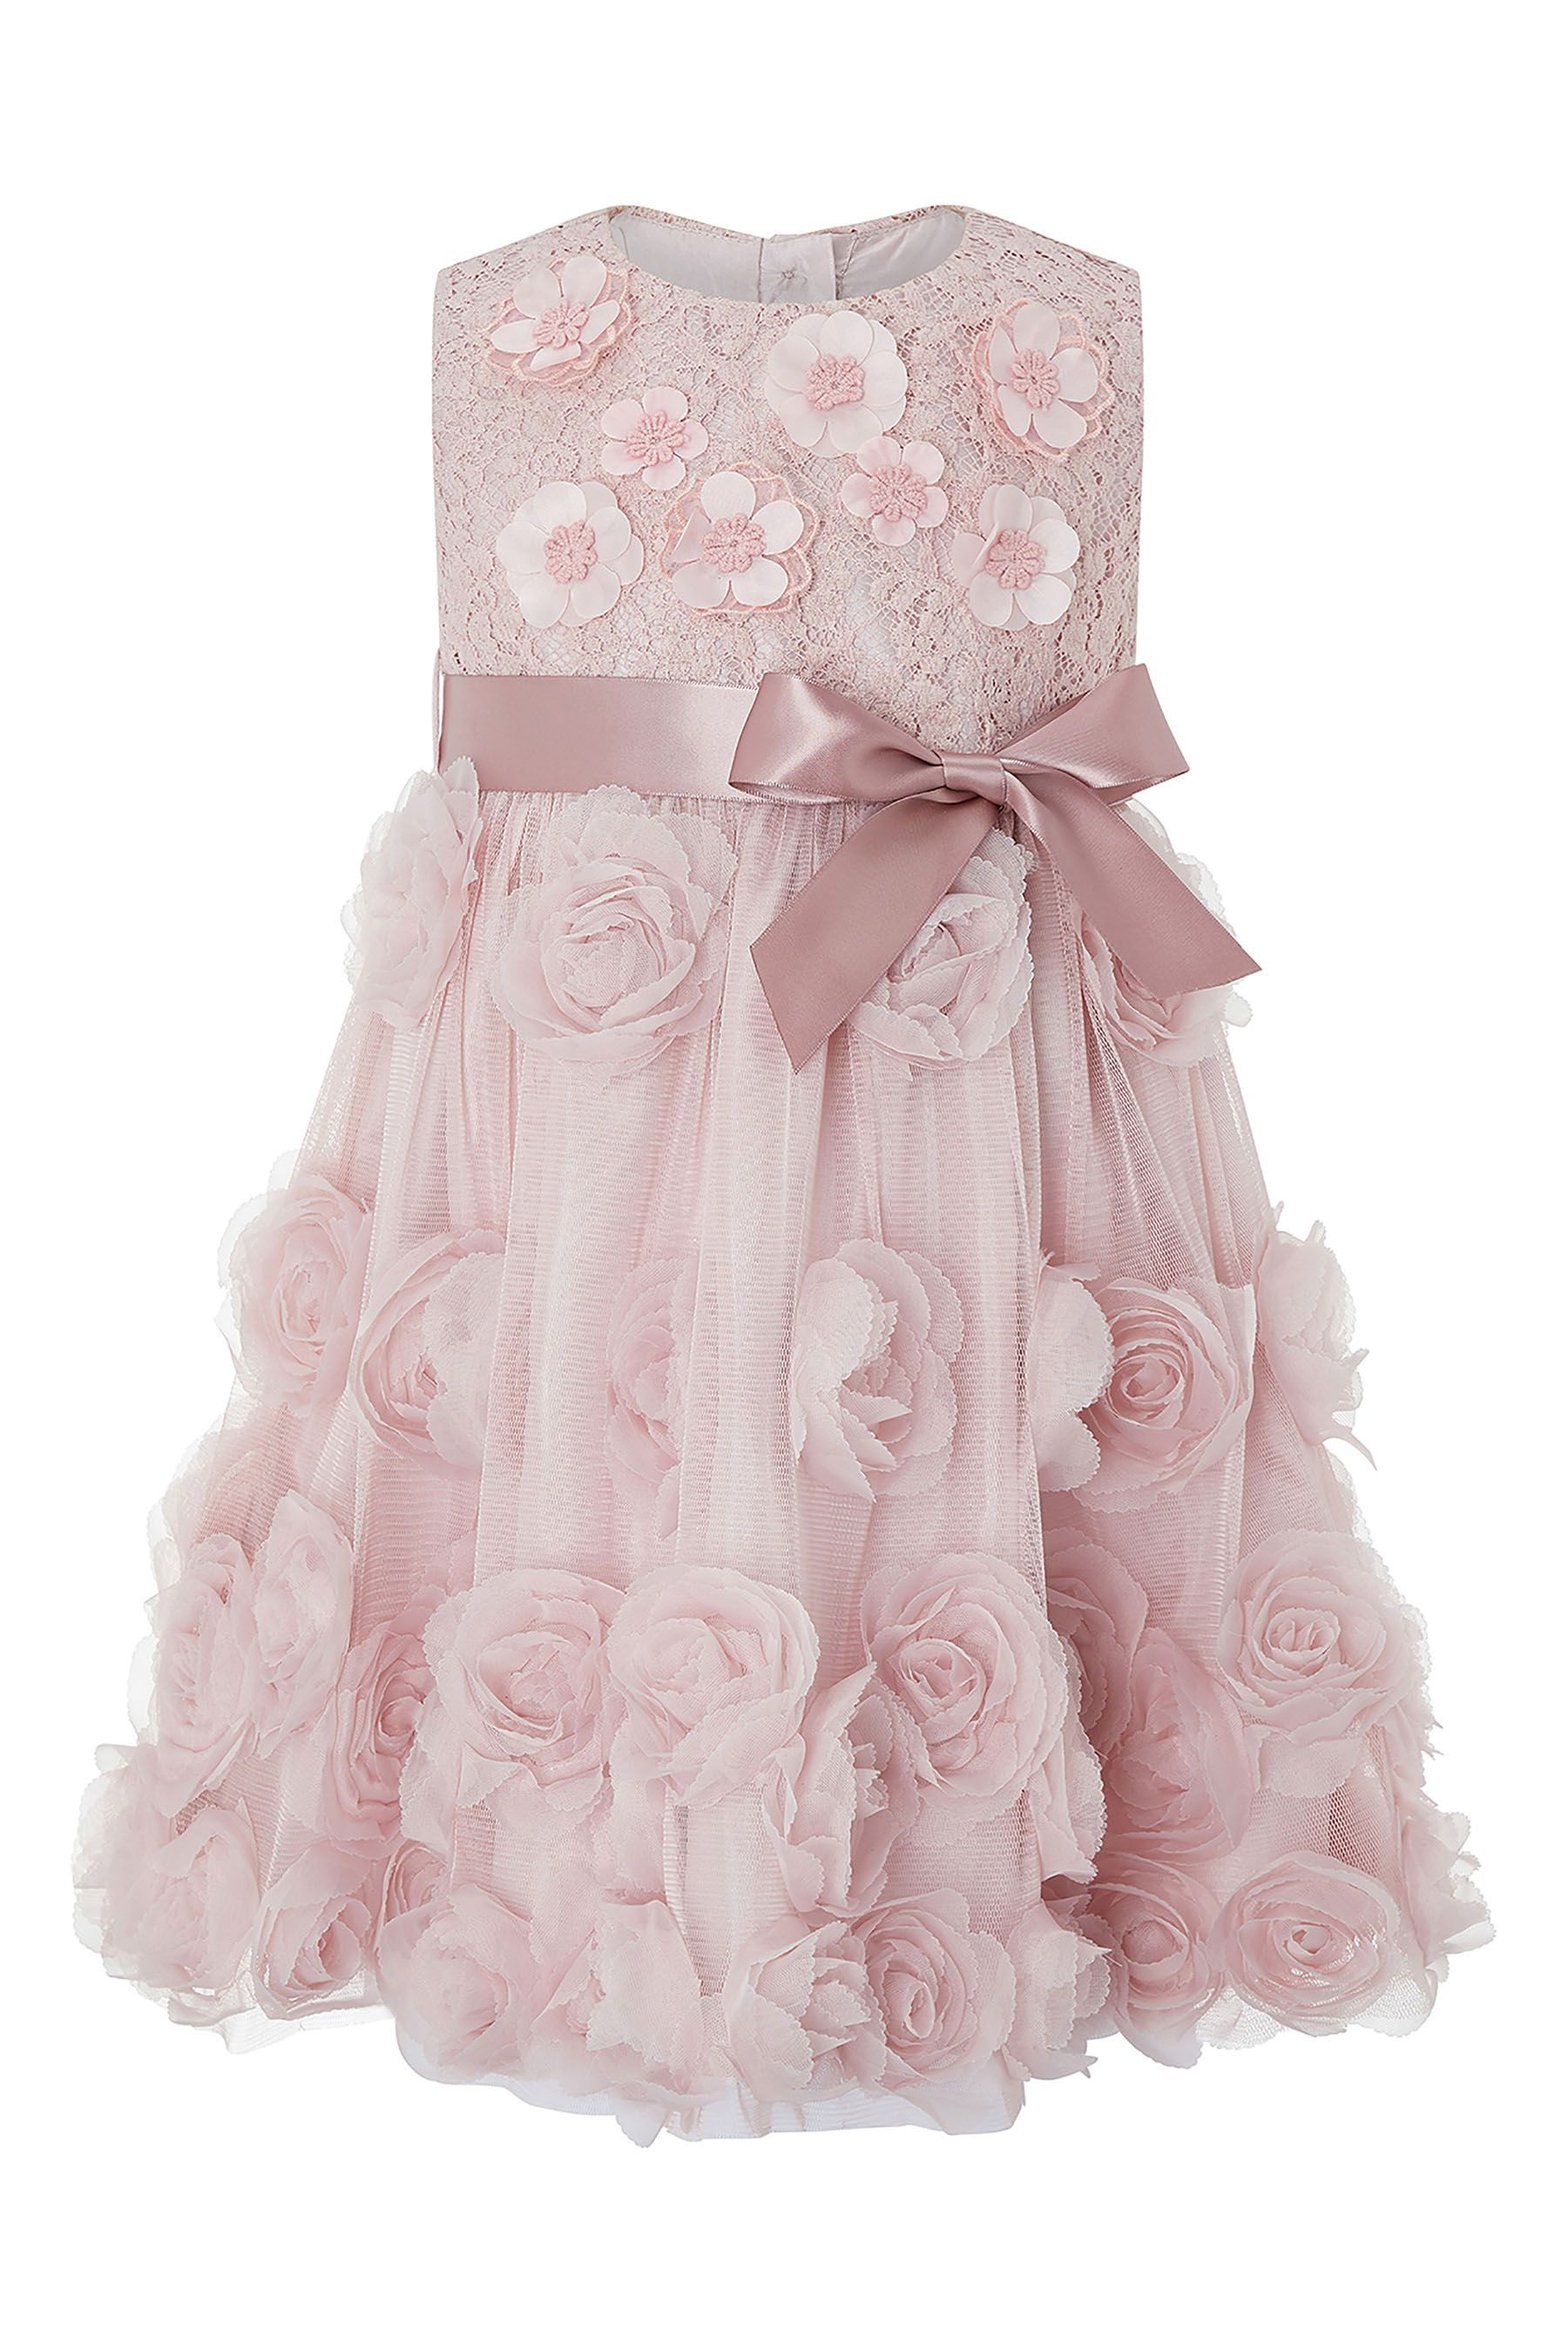 b7780e25 Girls Monsoon Baby Rosie-Nola Dress - Pink | Products | Kids outfits ...